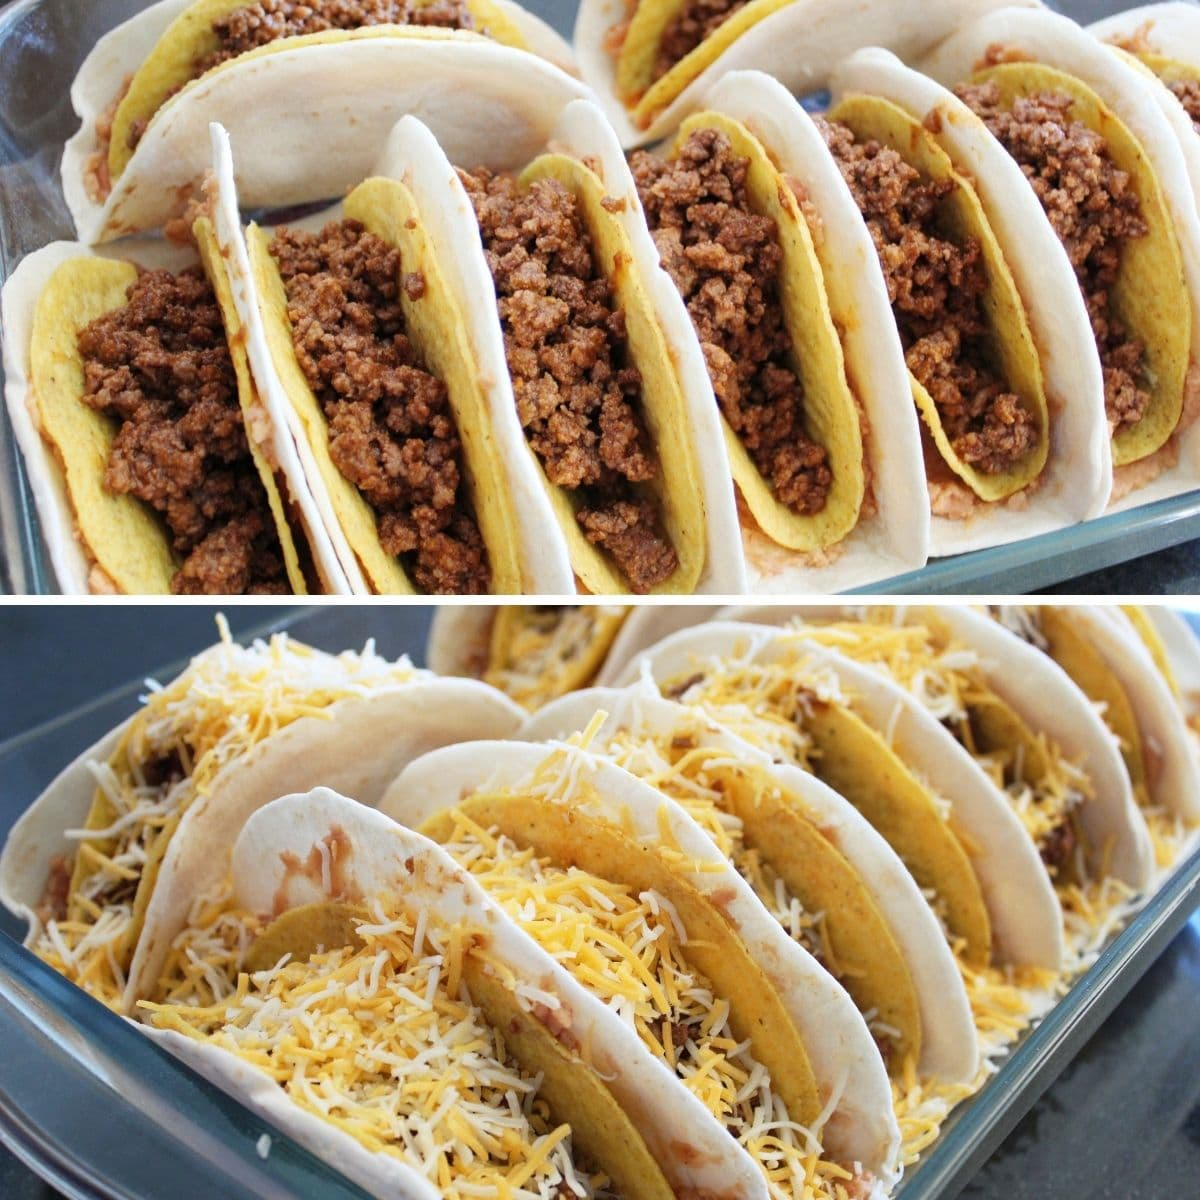 collage image of double deluxe tacos in a baking dish